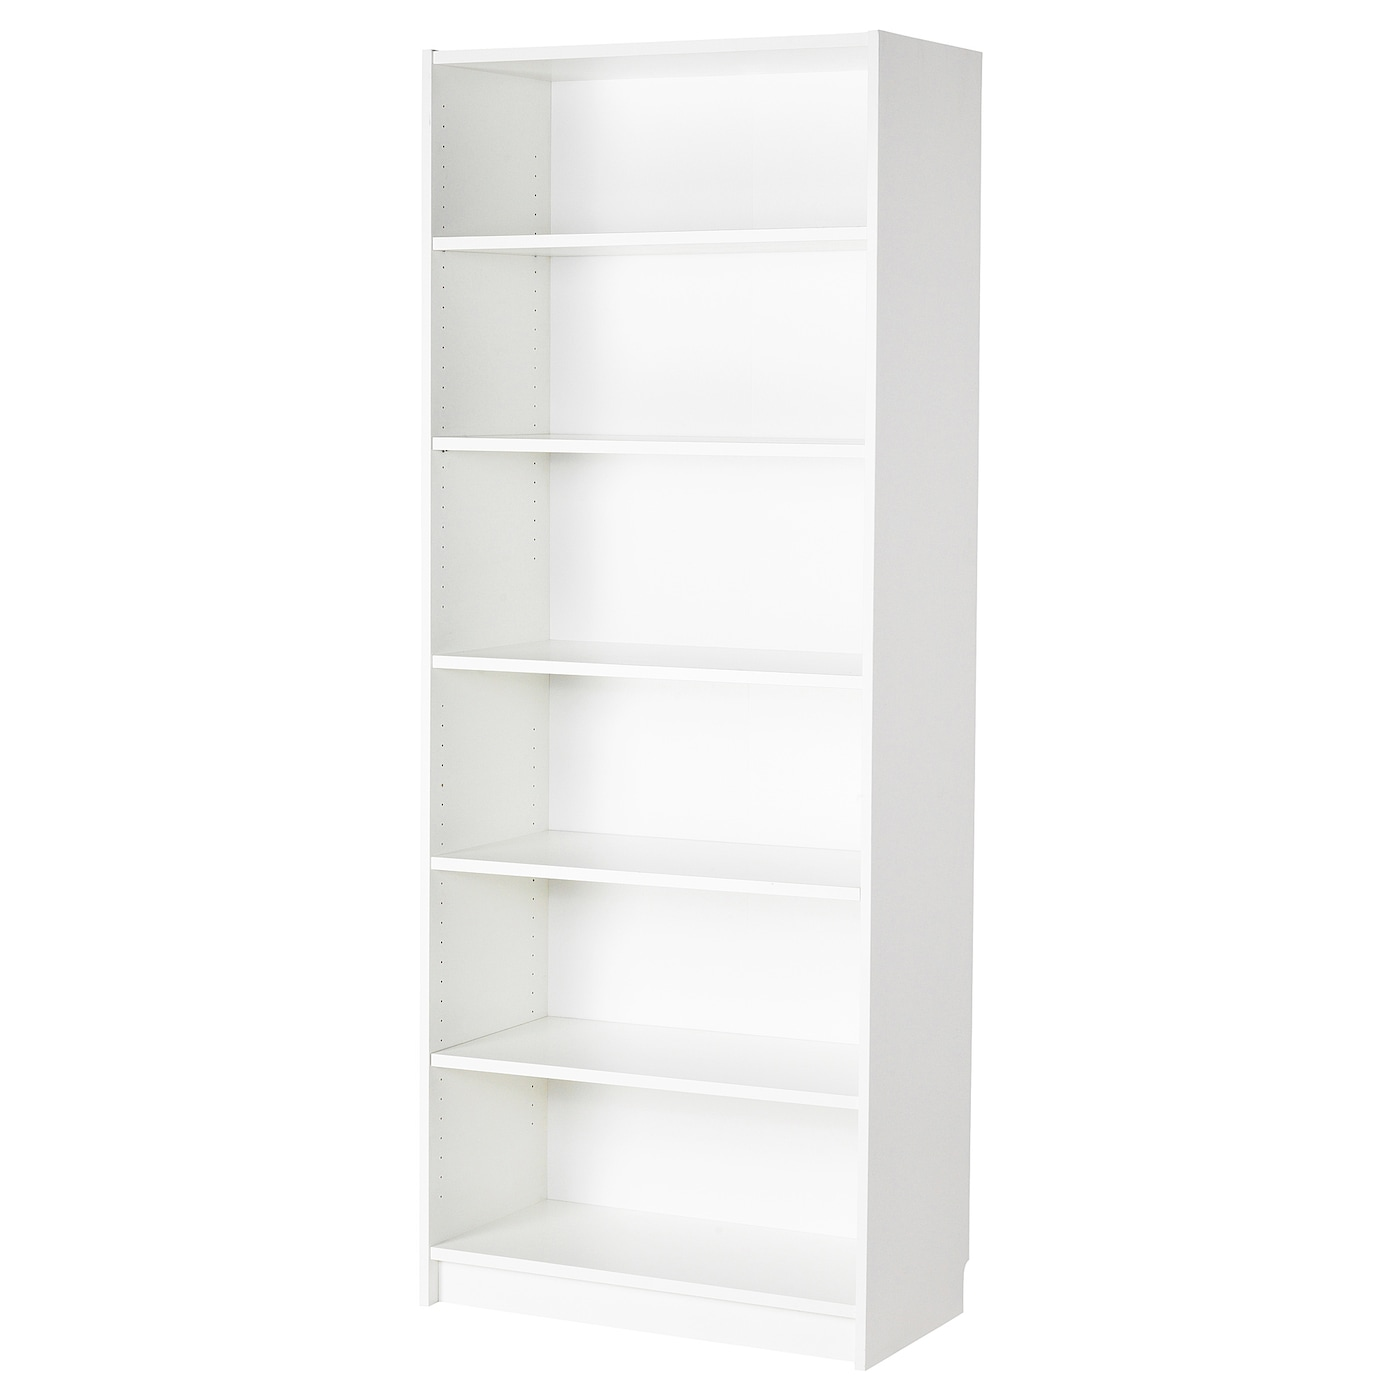 https://www.ikea.com/be/nl/images/products/billy-boekenkast-wit__0568611_pe665523_s5.jpg